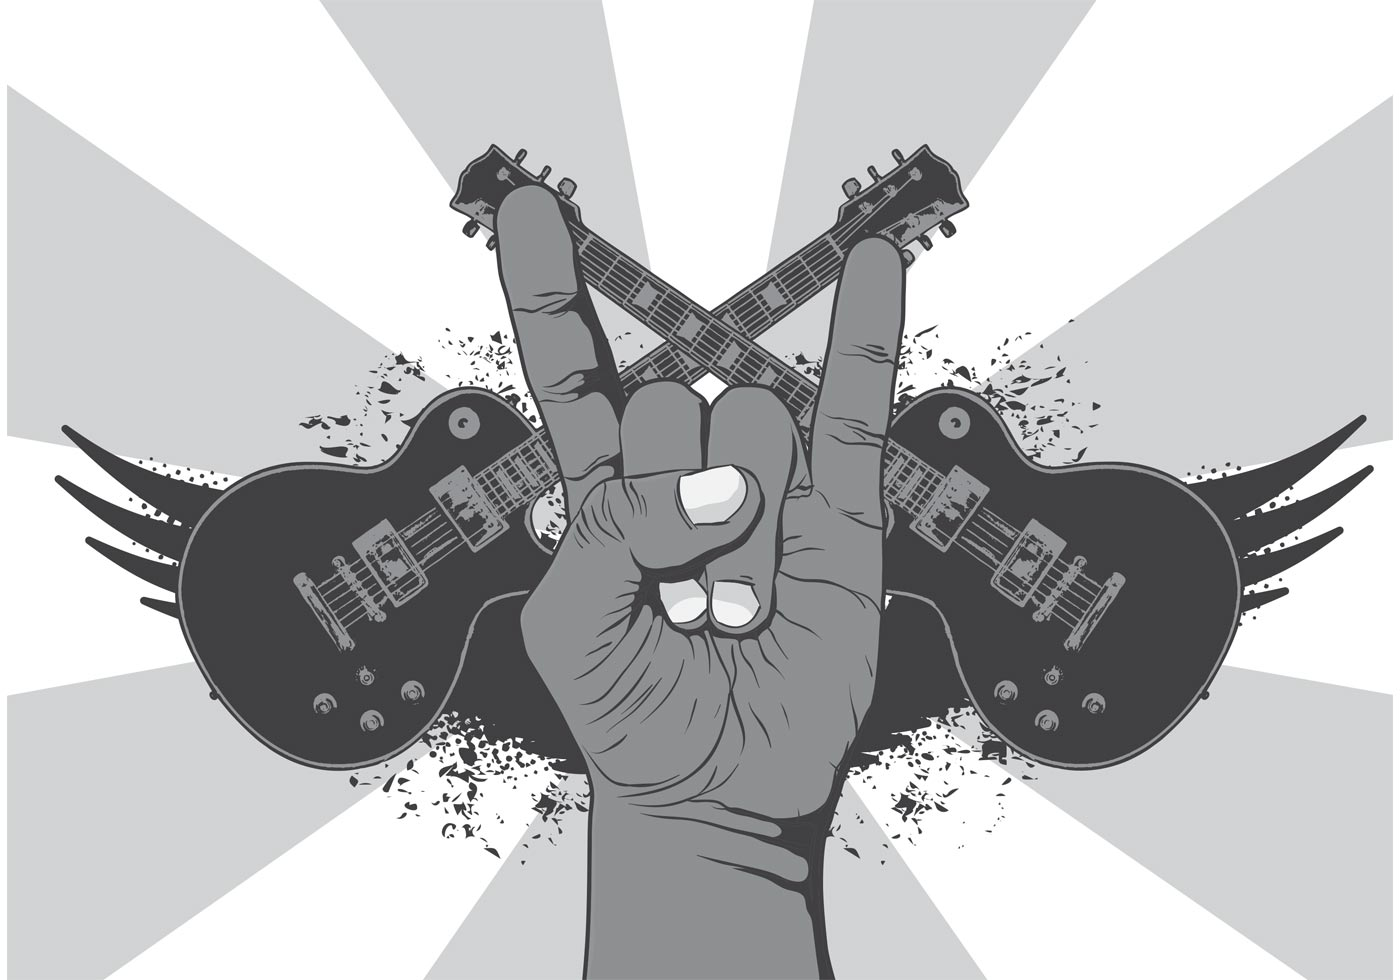 Rock n Roll Music Symbol Vector Background - Download Free ...